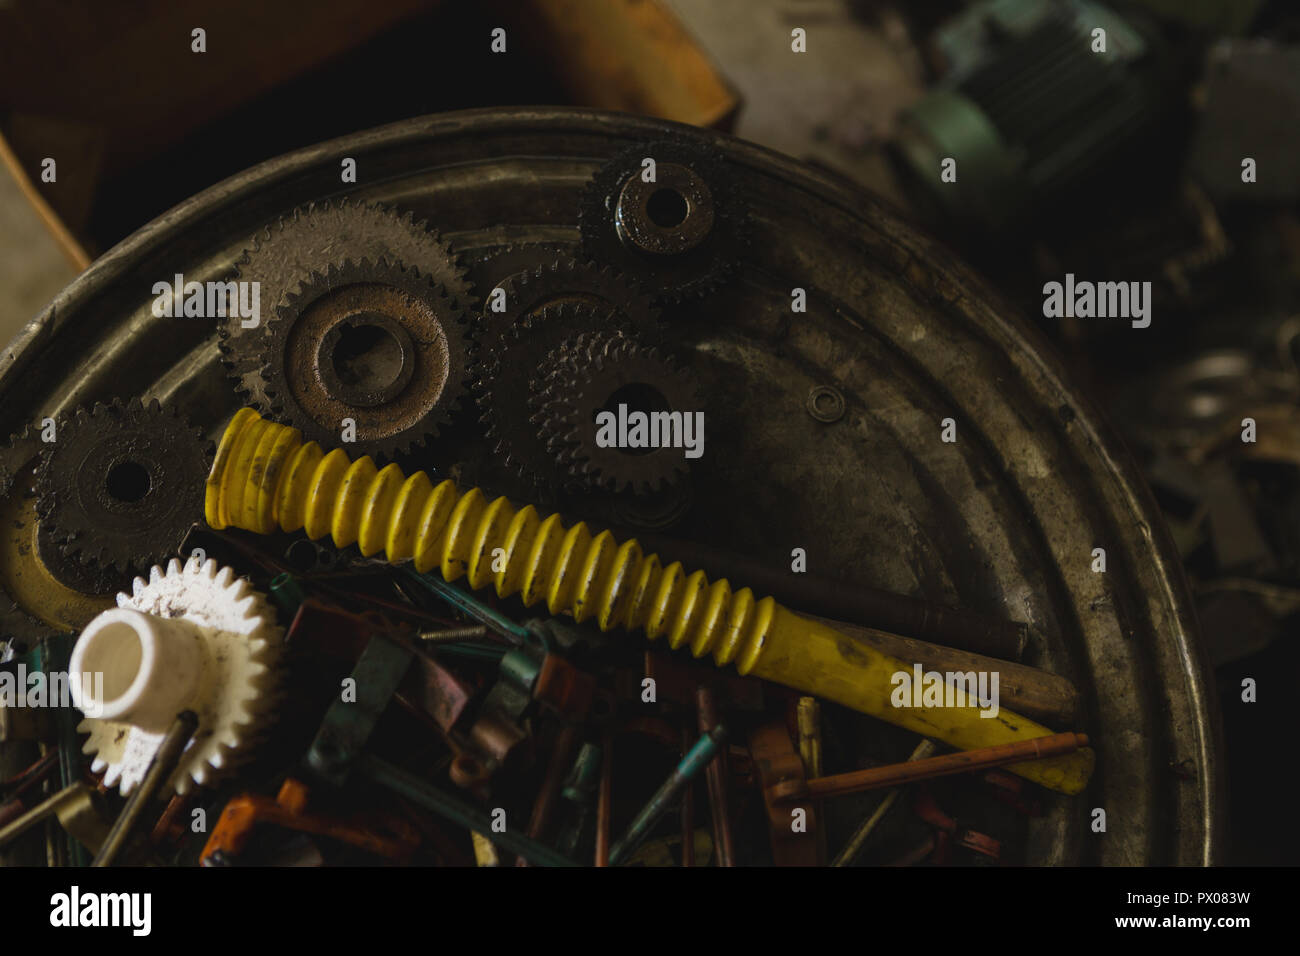 Machine parts in rope making industry Stock Photo